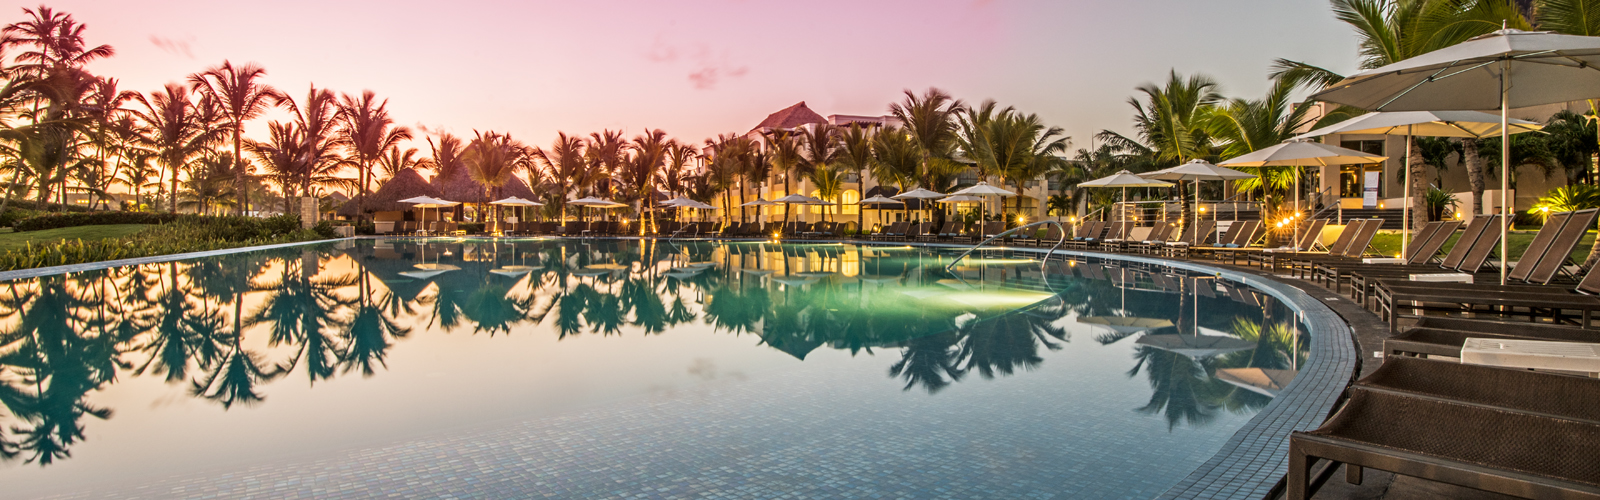 Hard Rock Hotel & Casino, Punta Cana